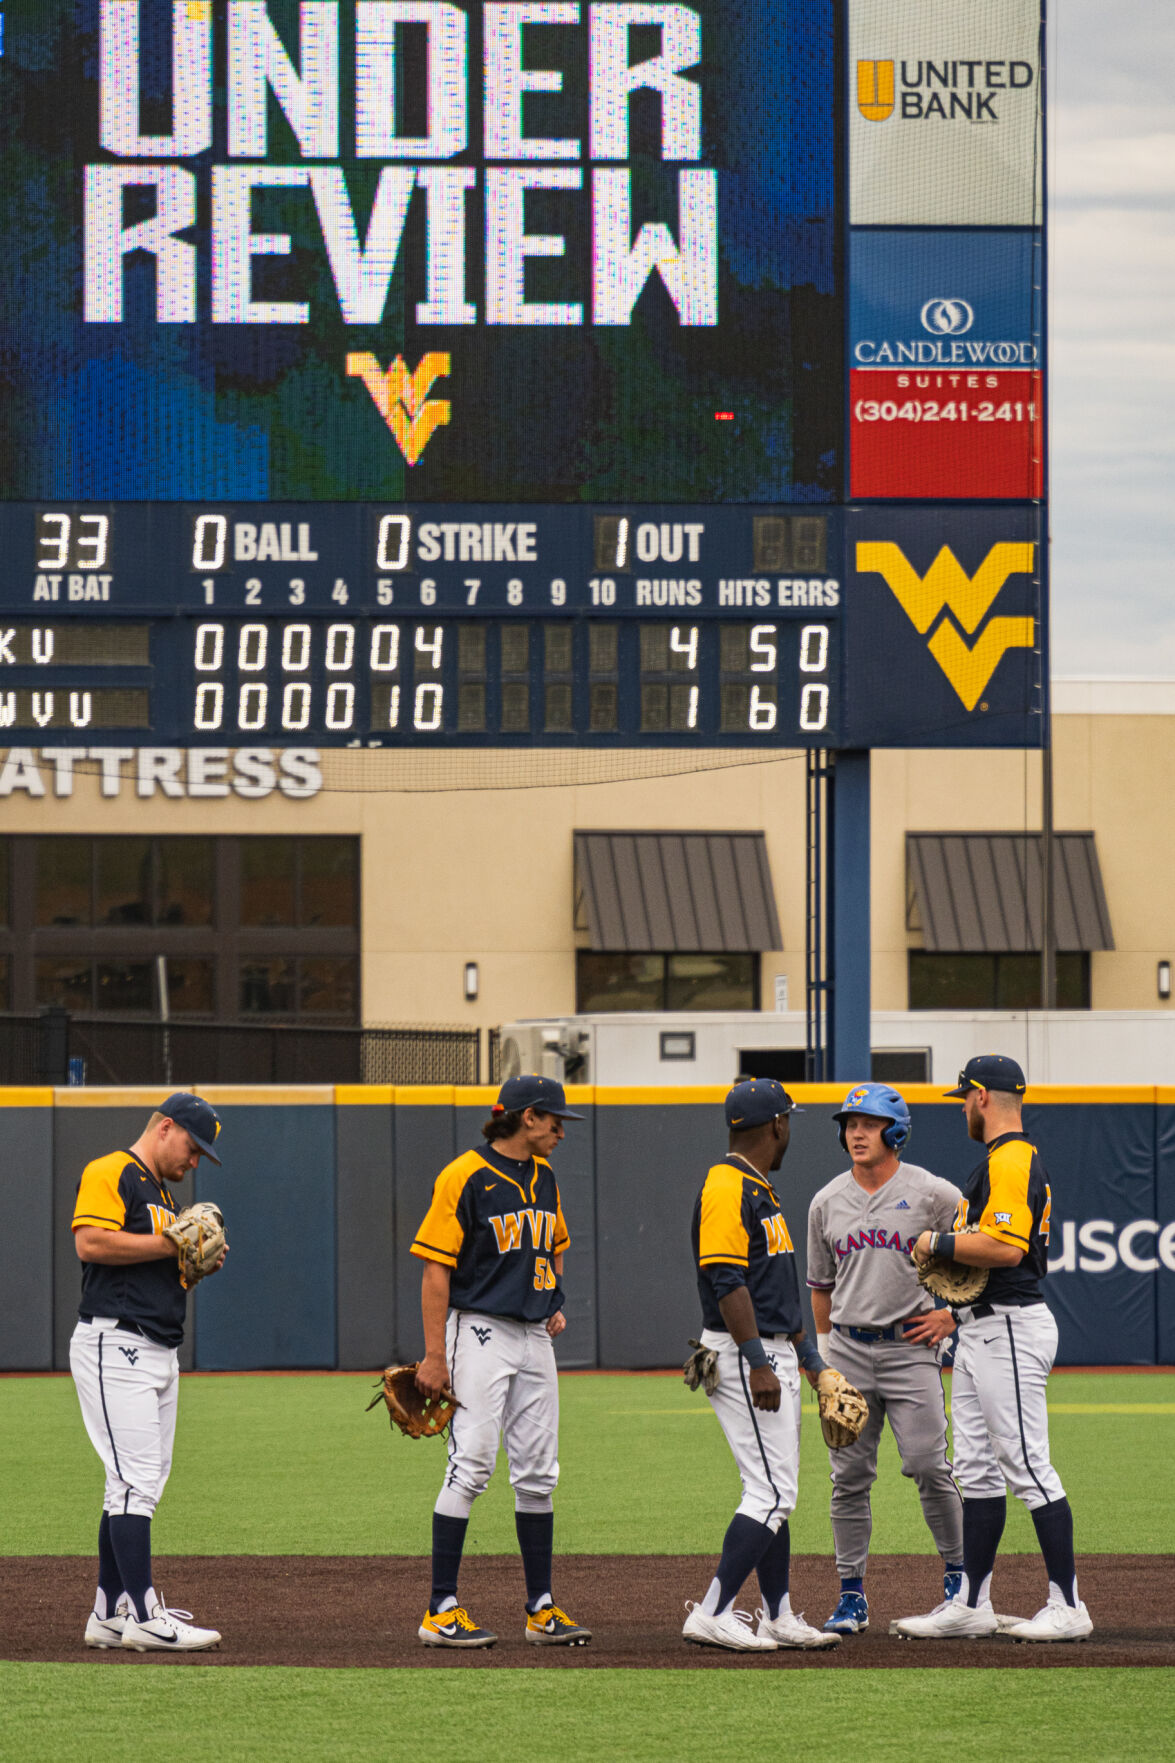 West Virginia's players wait while a play is being reviewed against Kansas on March 27, 2021, Morgantown, W.Va.